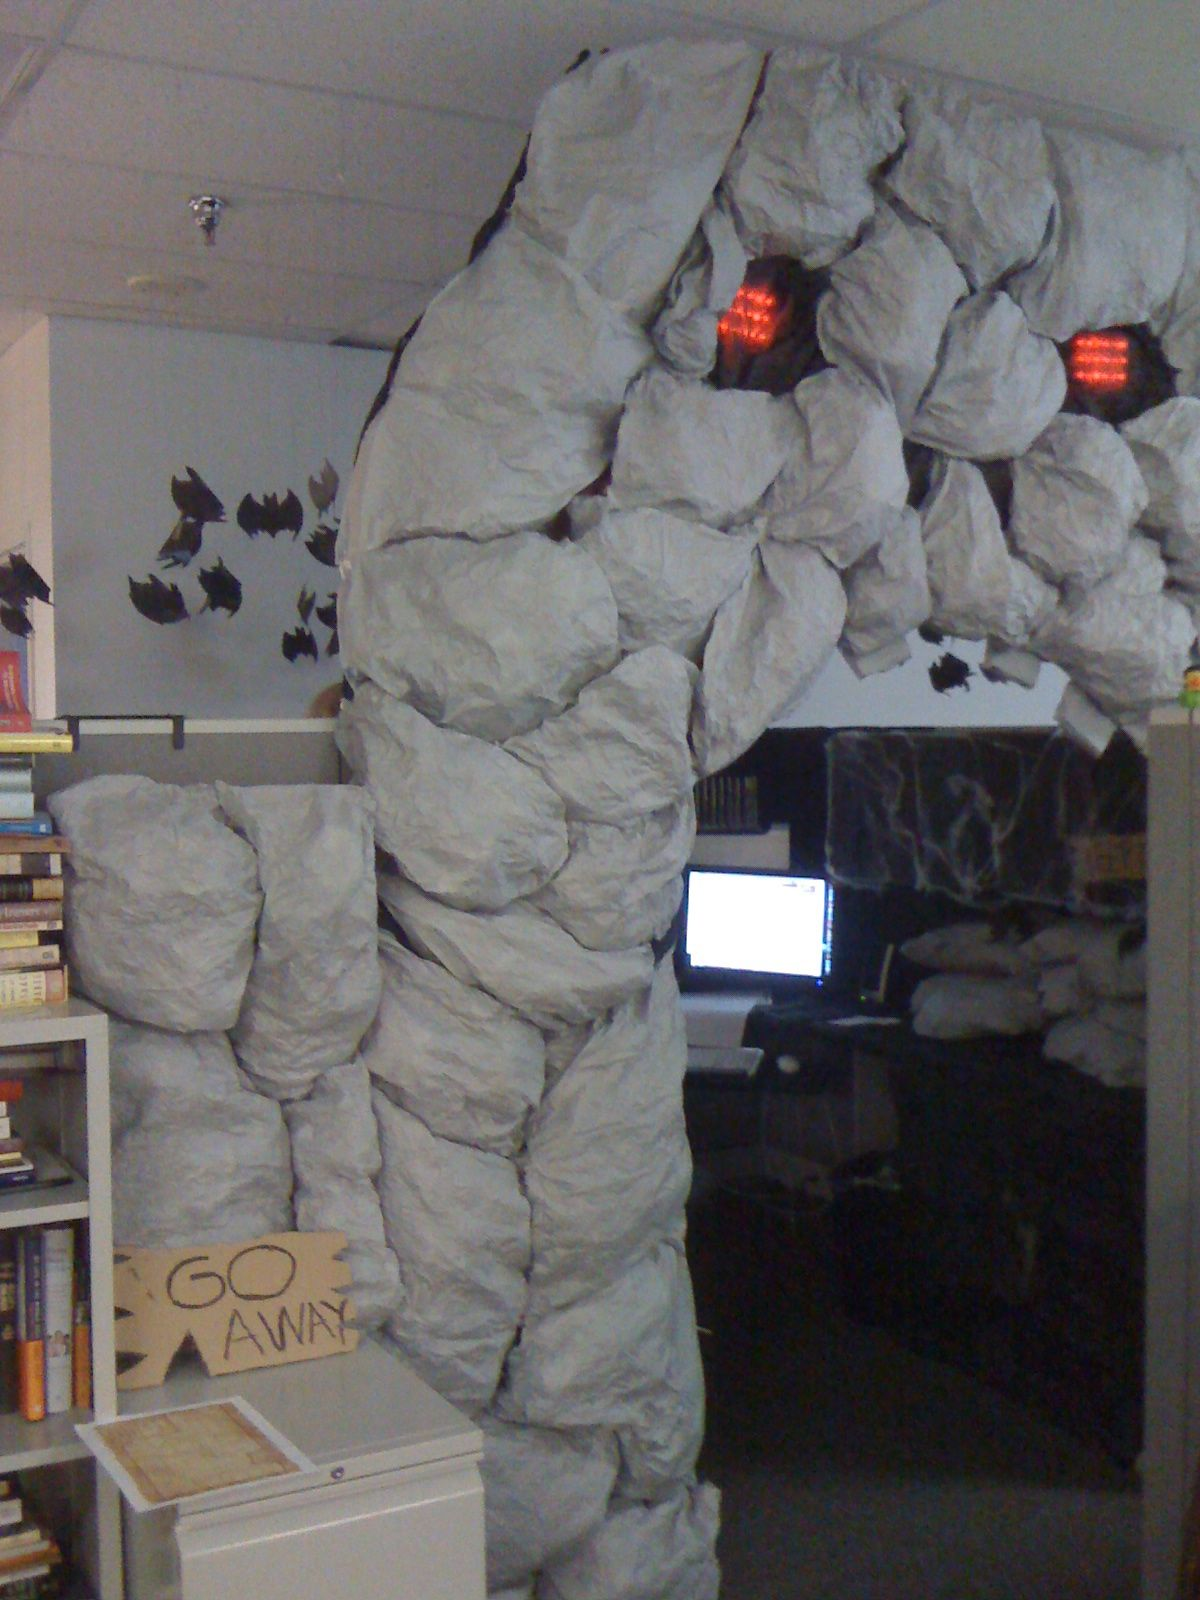 DIY Cubicle Cave Des Moines Register Staff Blogs Halloween - Halloween Office Decorations Ideas